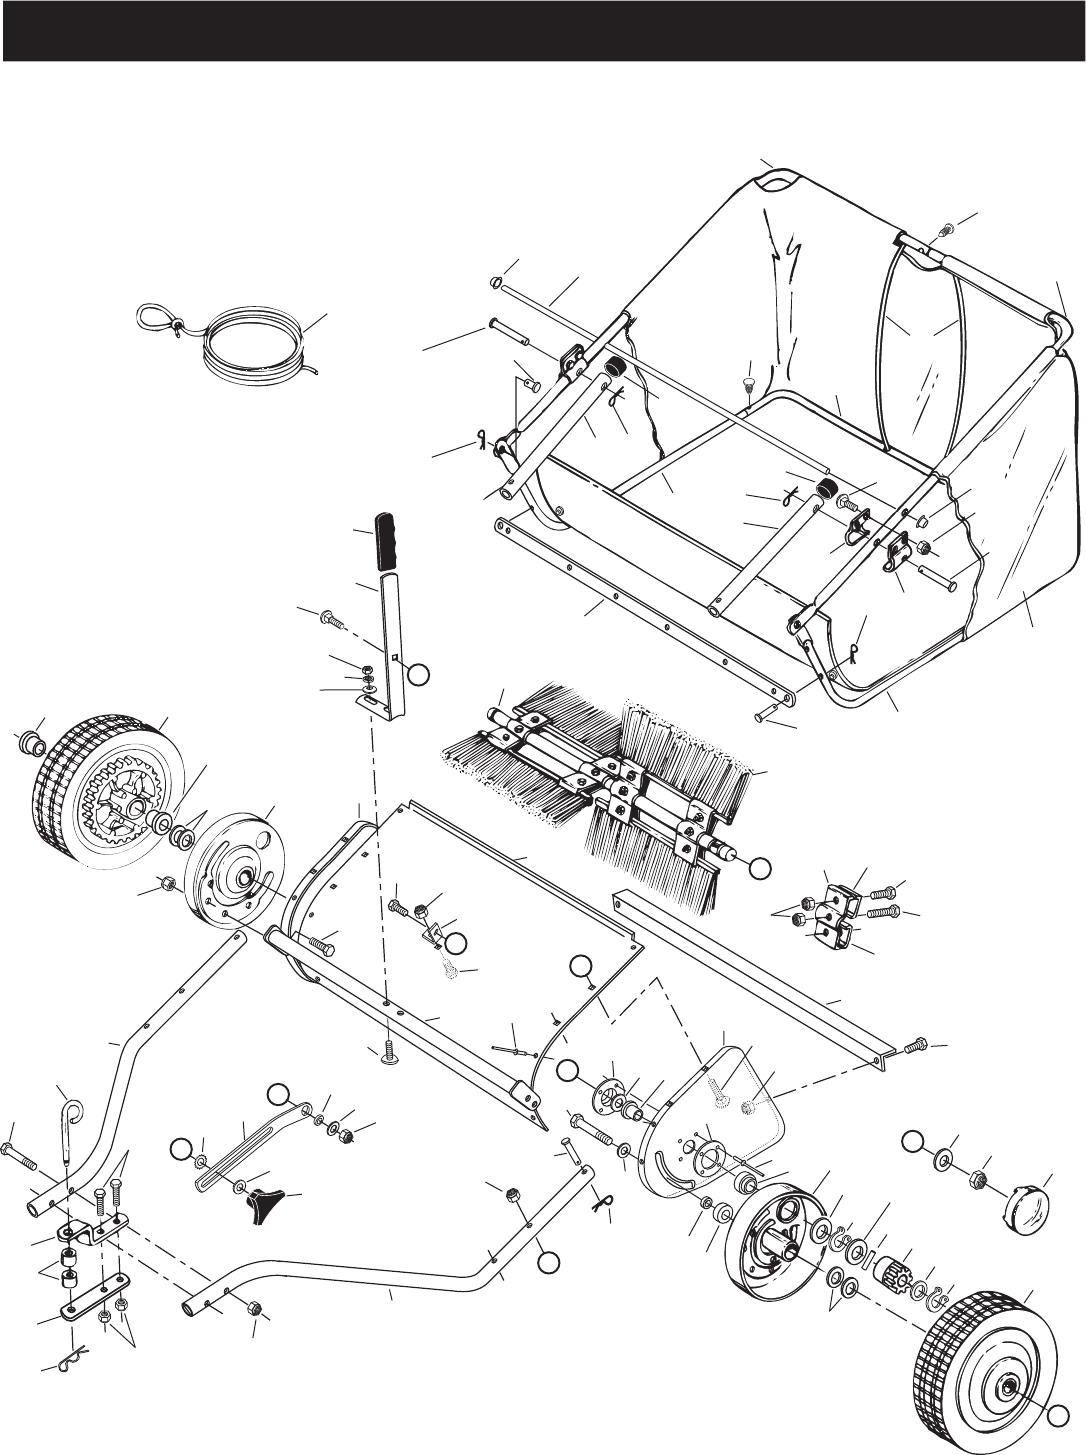 Craftsman Lawn Vacuum Parts : Page of craftsman lawn sweeper  user guide